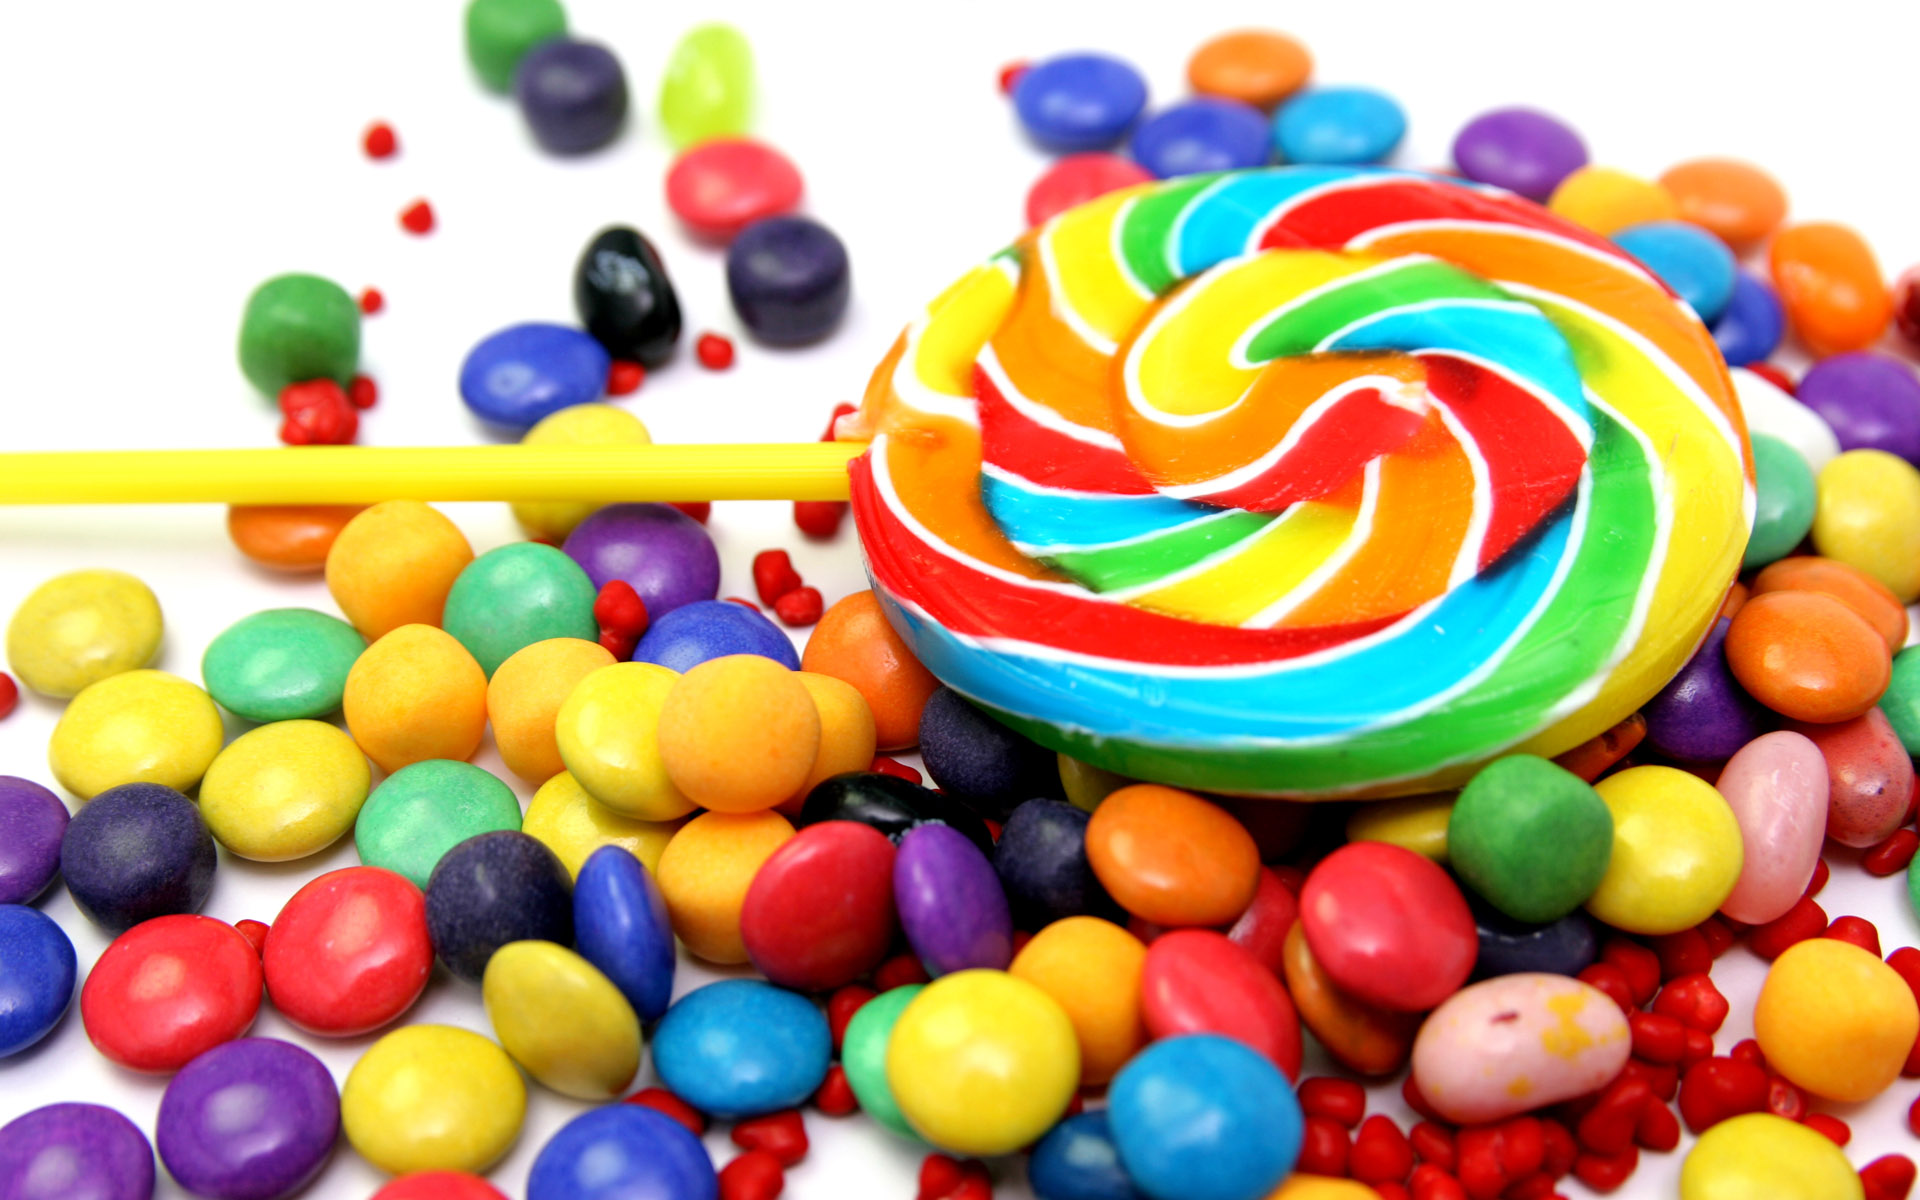 Lollipop Candy Wallpaper Colorful Lollipop Candy hd